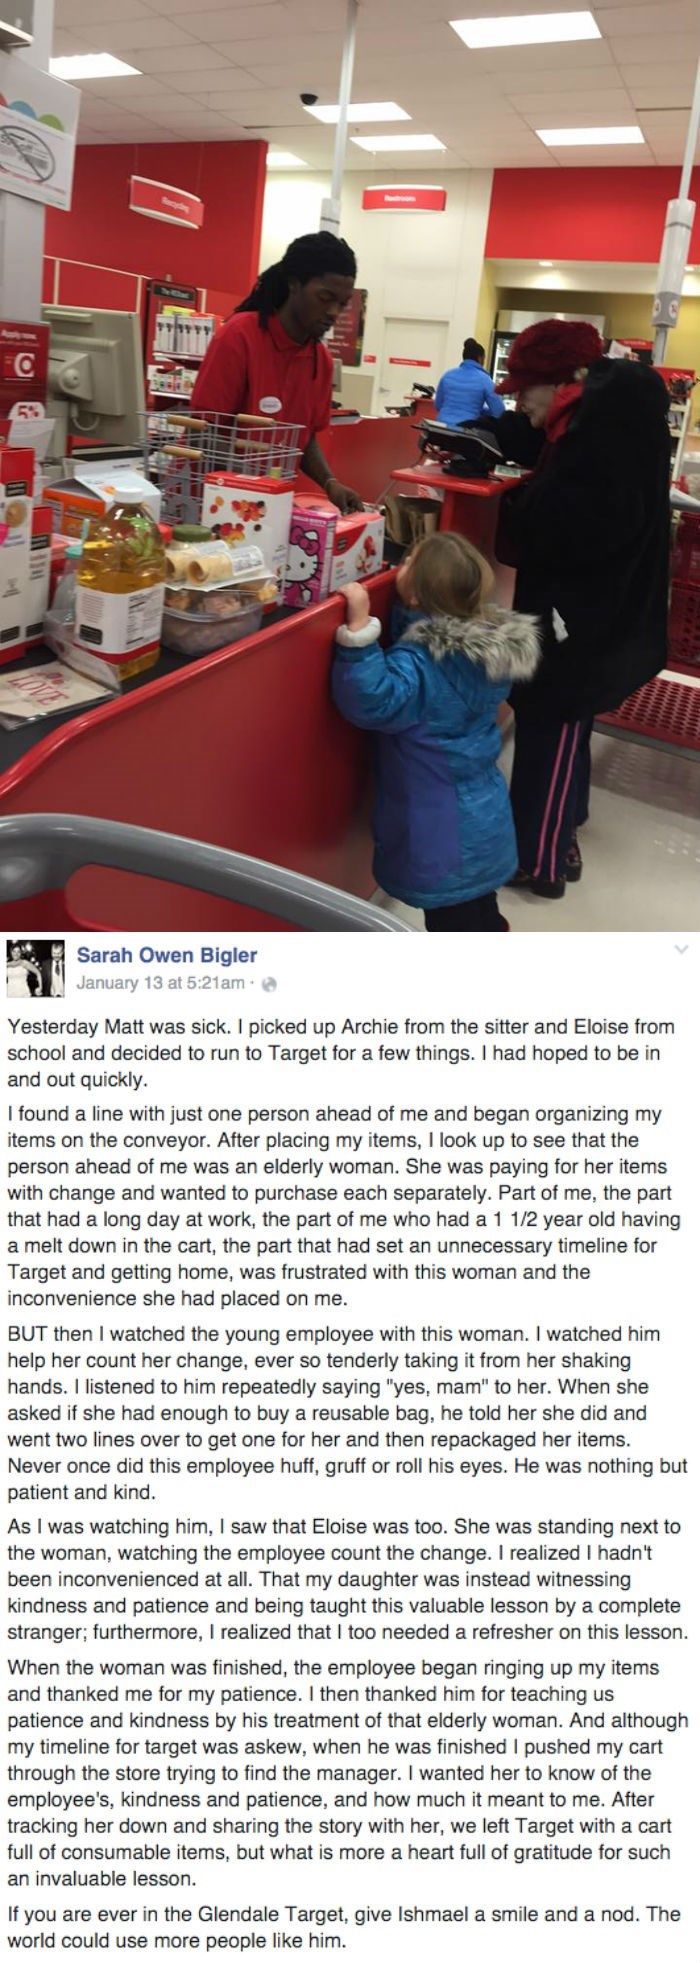 heartwarming parenting image mother tells story of patience from Target employee